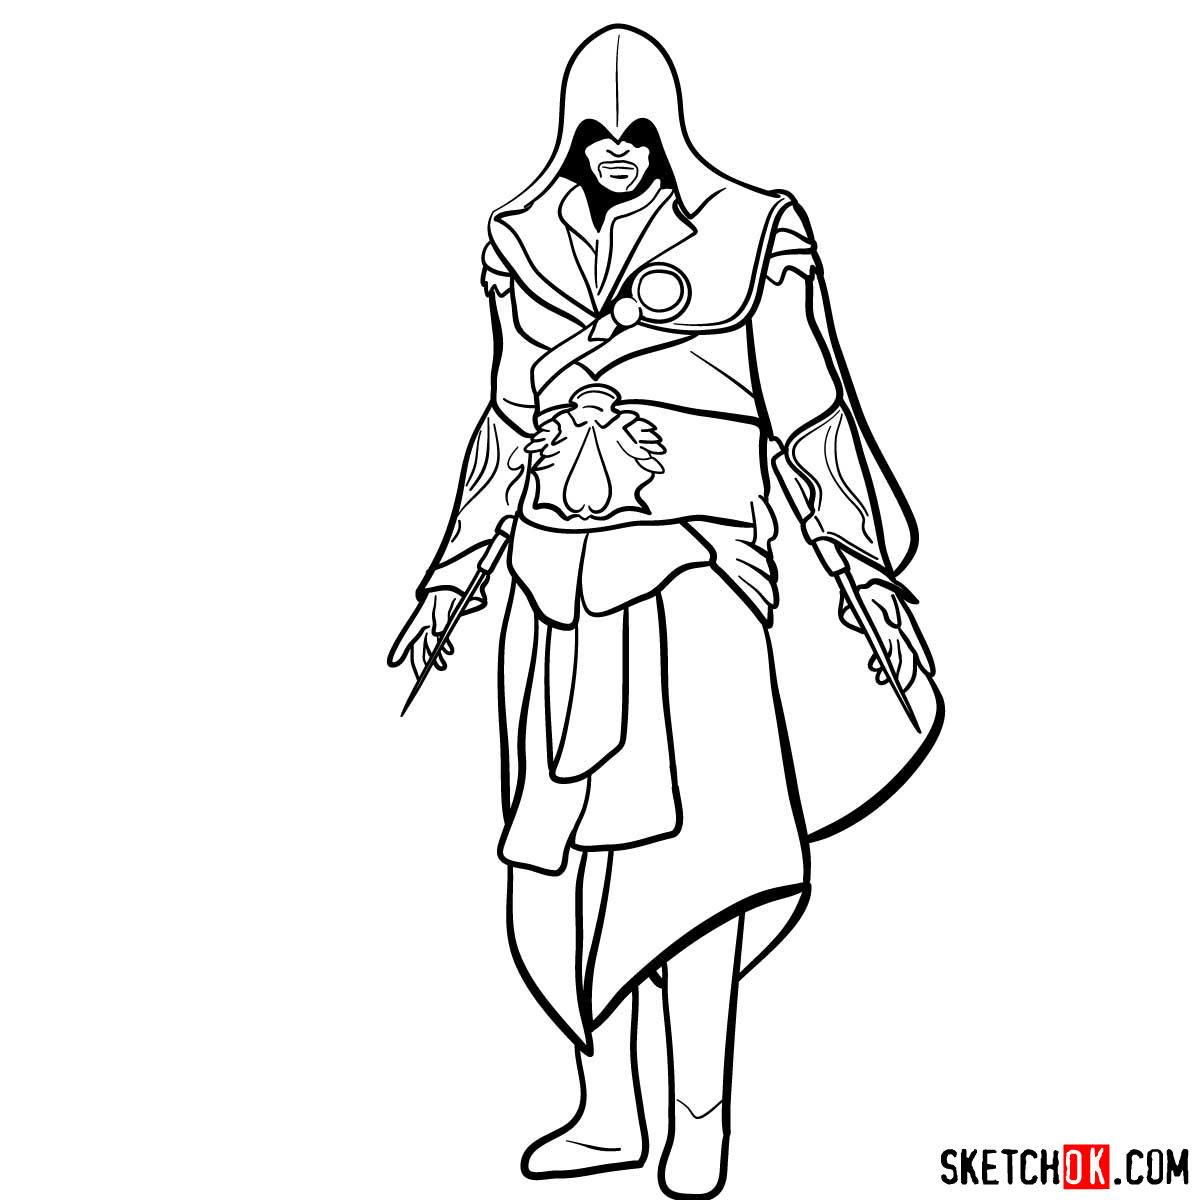 How To Draw An Assassin From Assassin S Creed Game Step By Step Drawing Tutorials